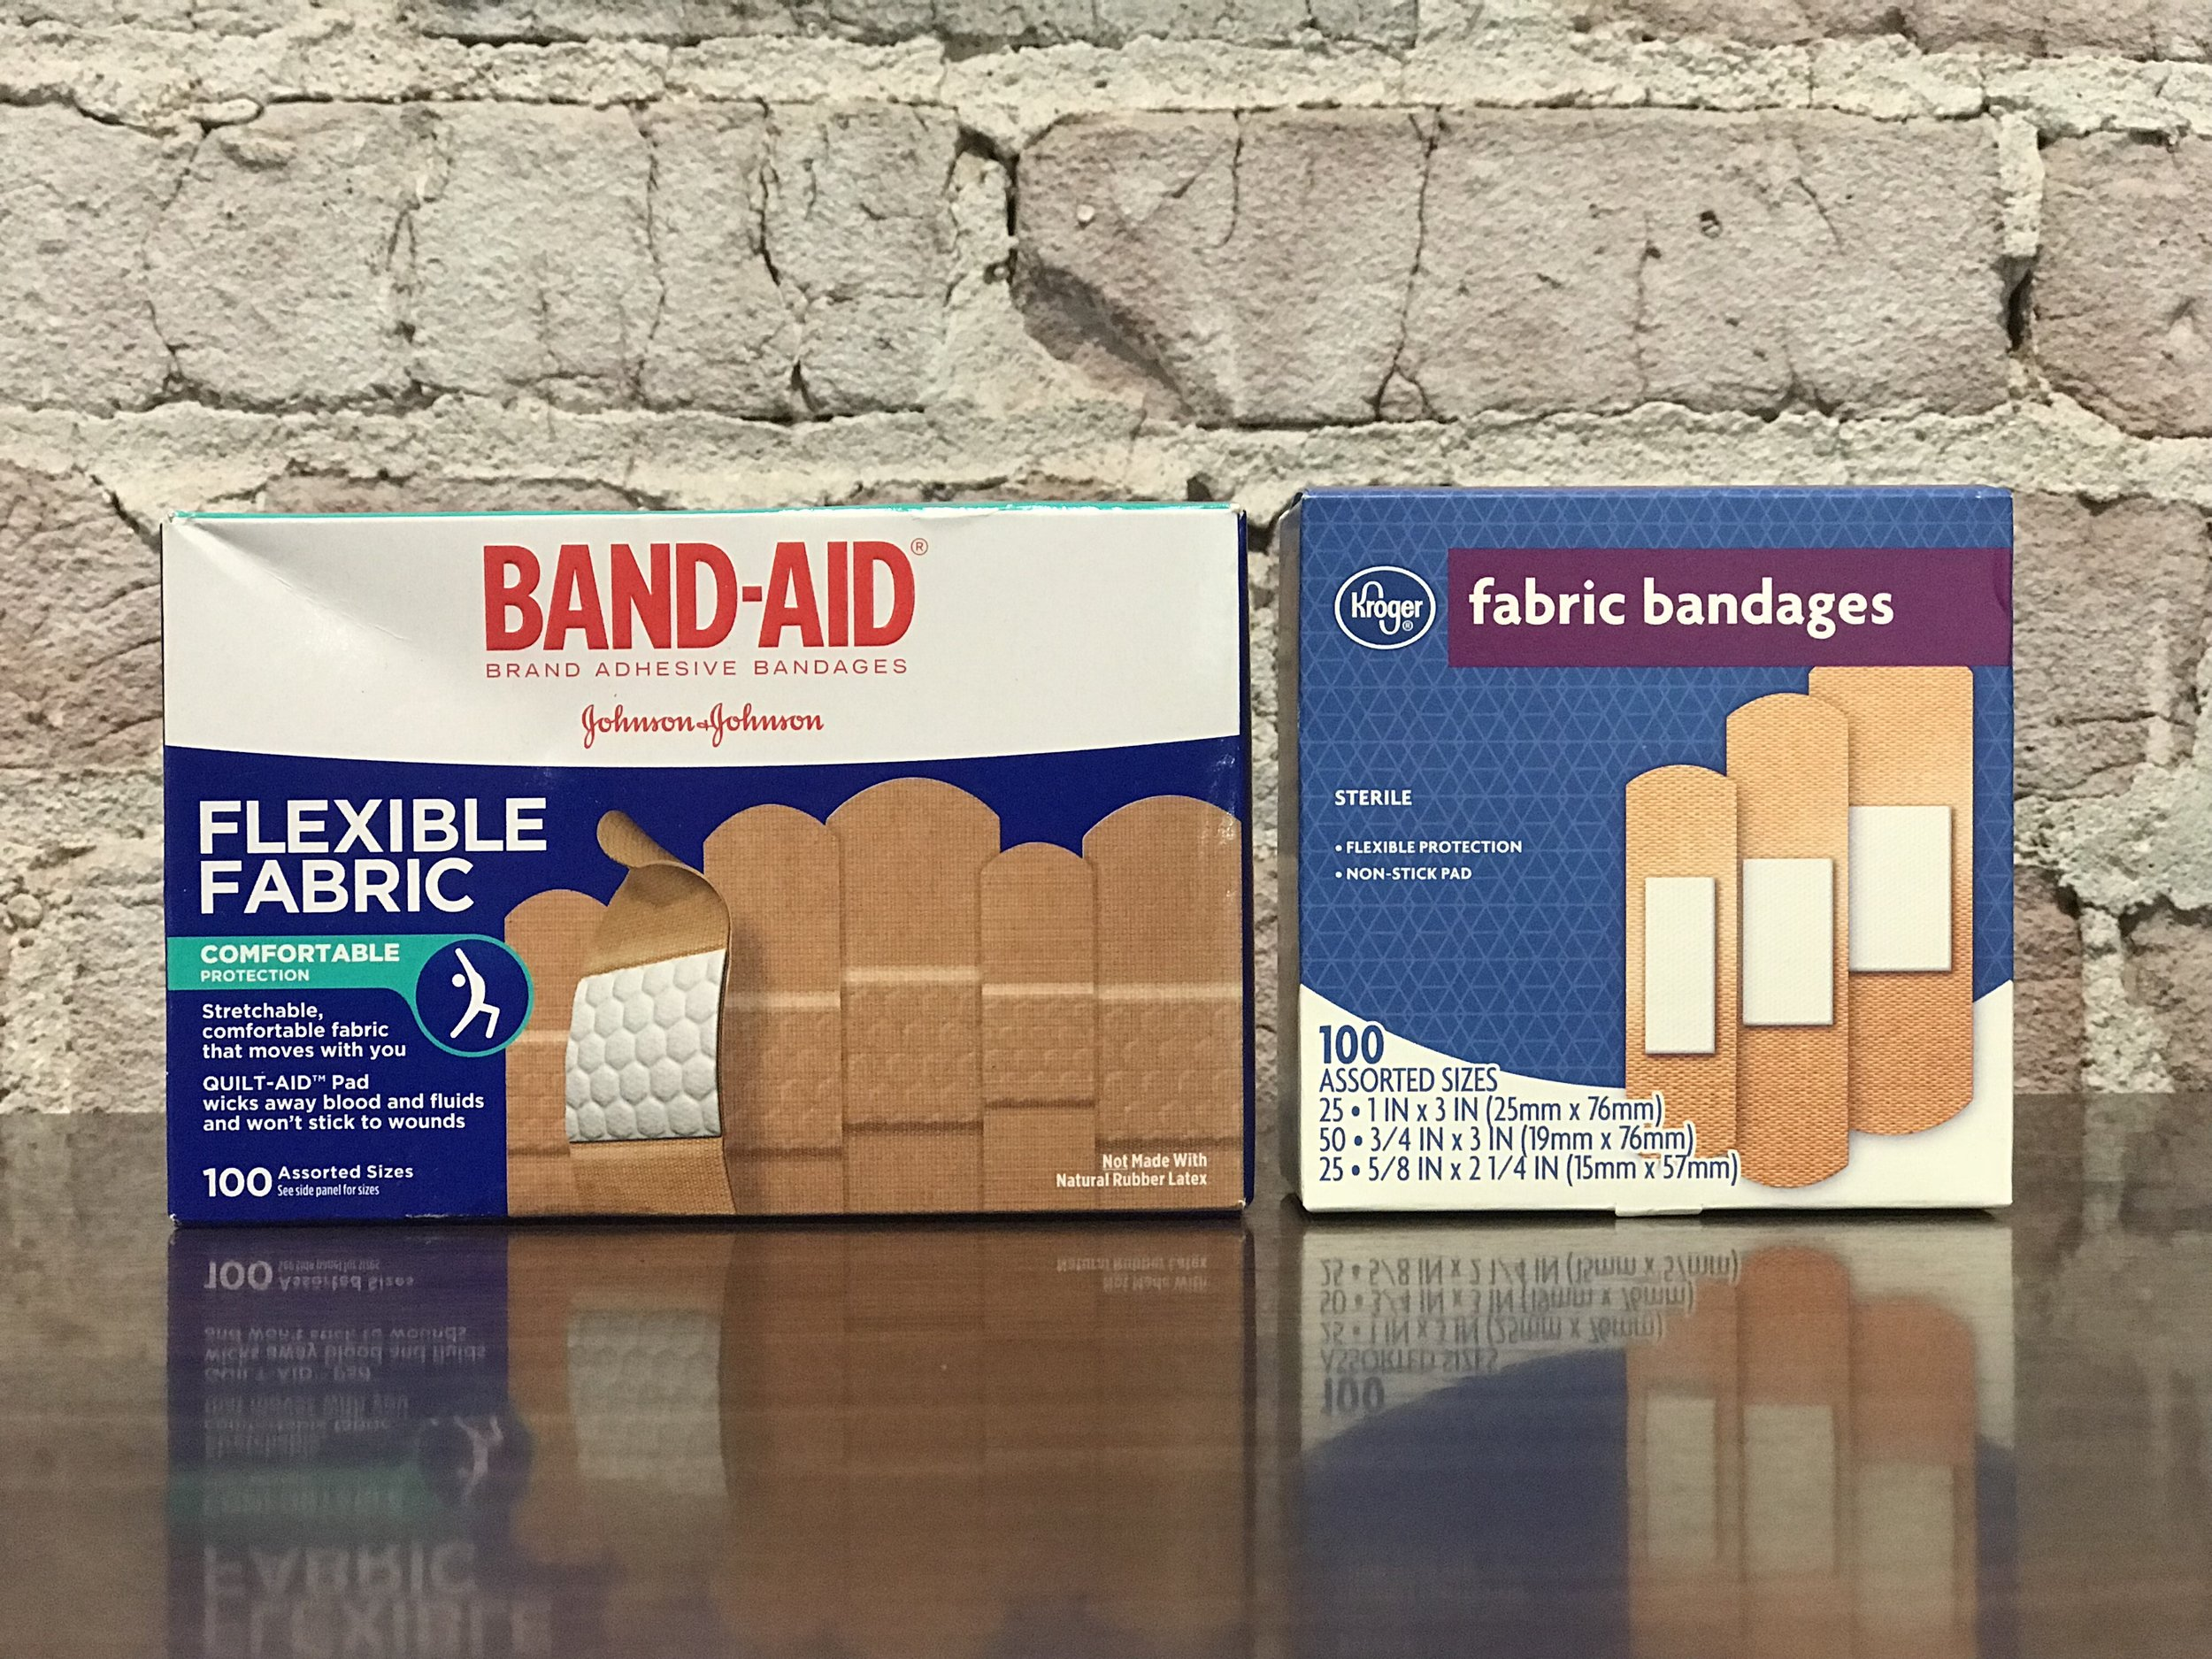 We found the Kroger bandages 90% similar to the Band-Aid brand.